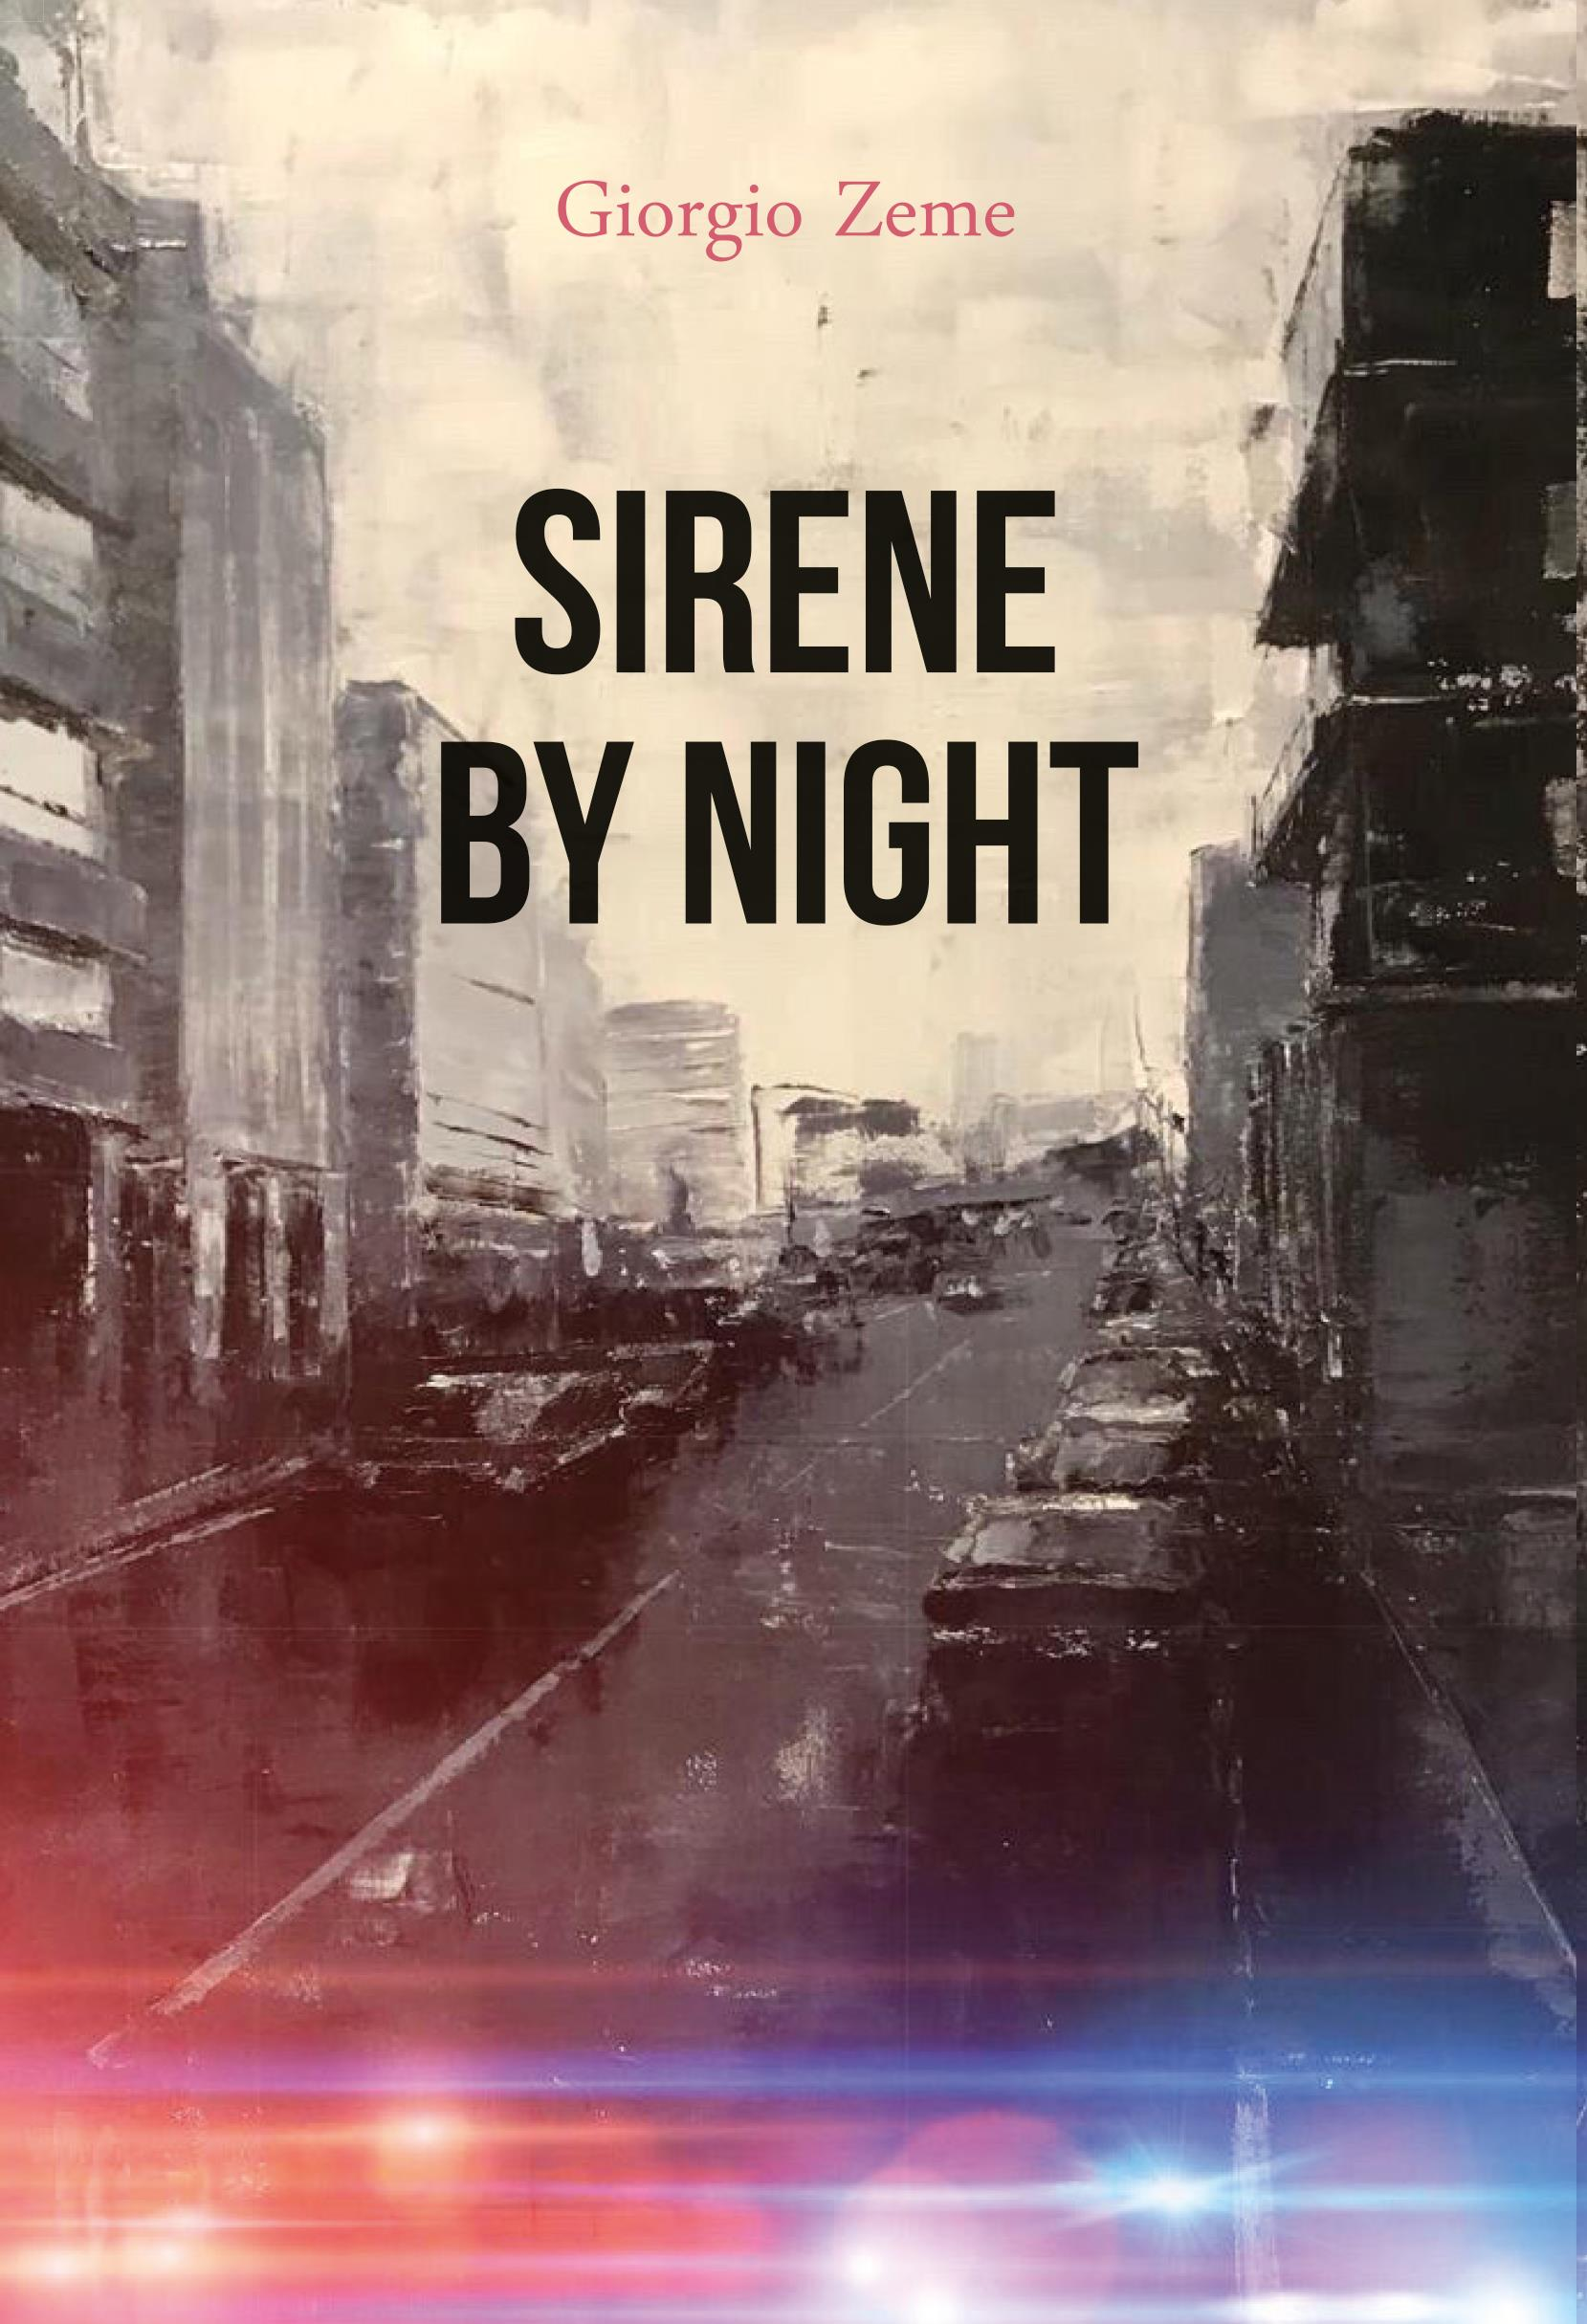 Sirene by night